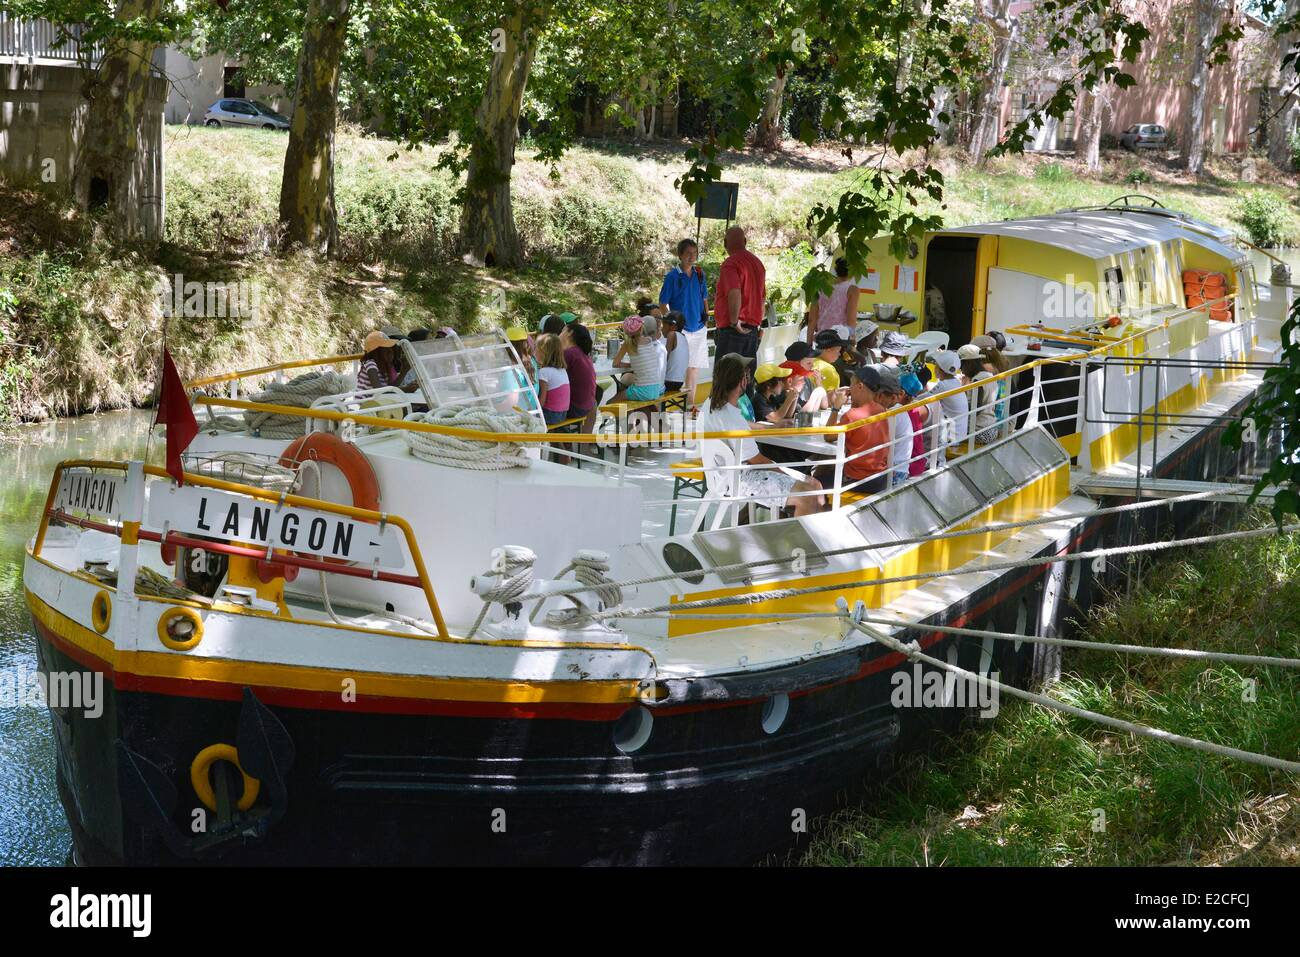 Canal Du Midi Barge Stock Photos & Canal Du Midi Barge Stock